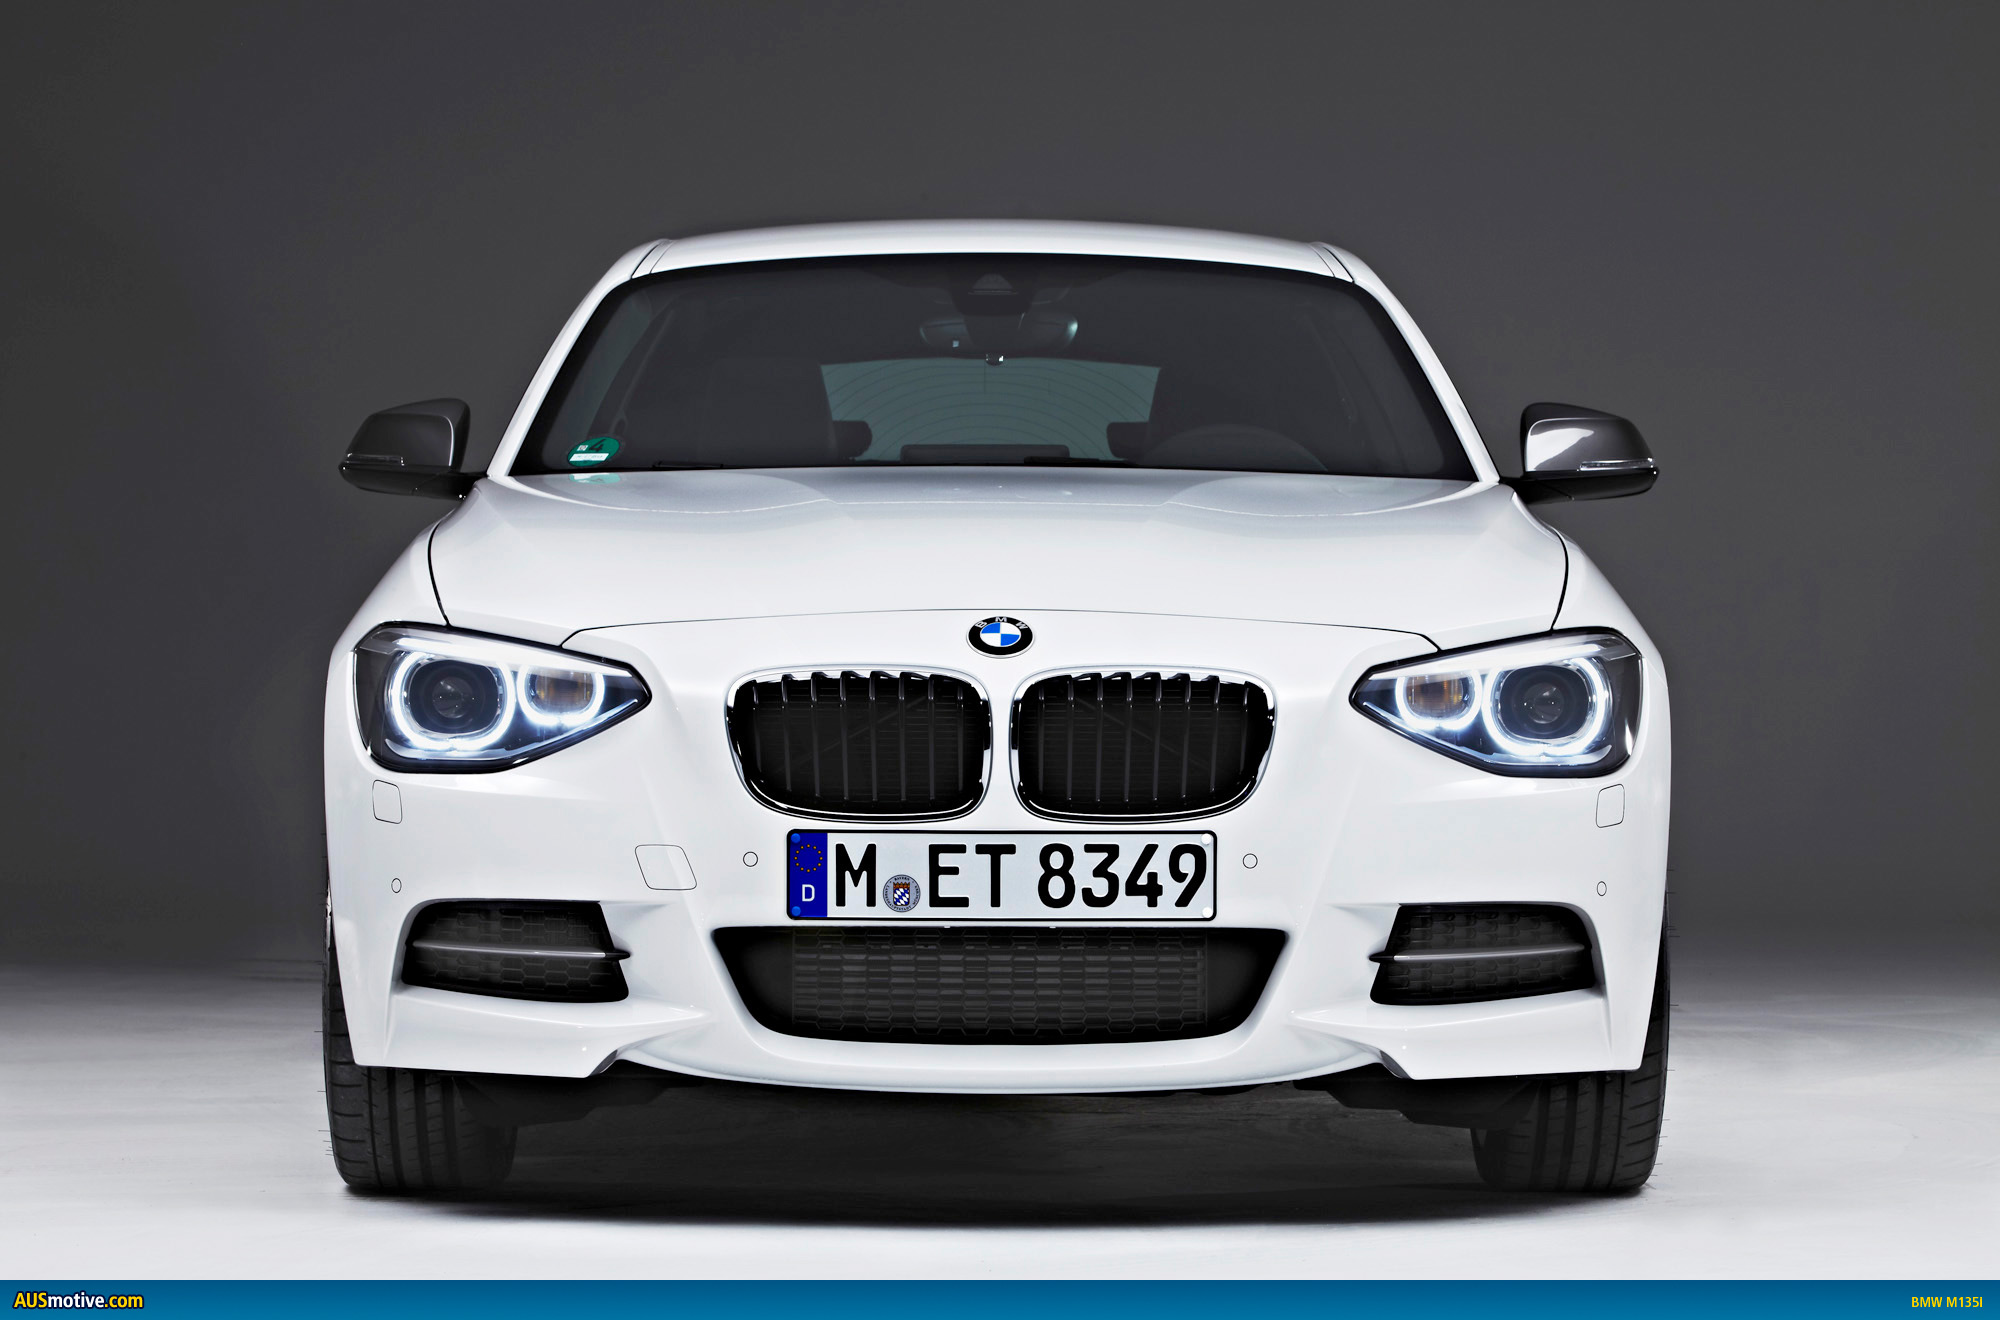 AUSmotive.com » BMW M135i revealed